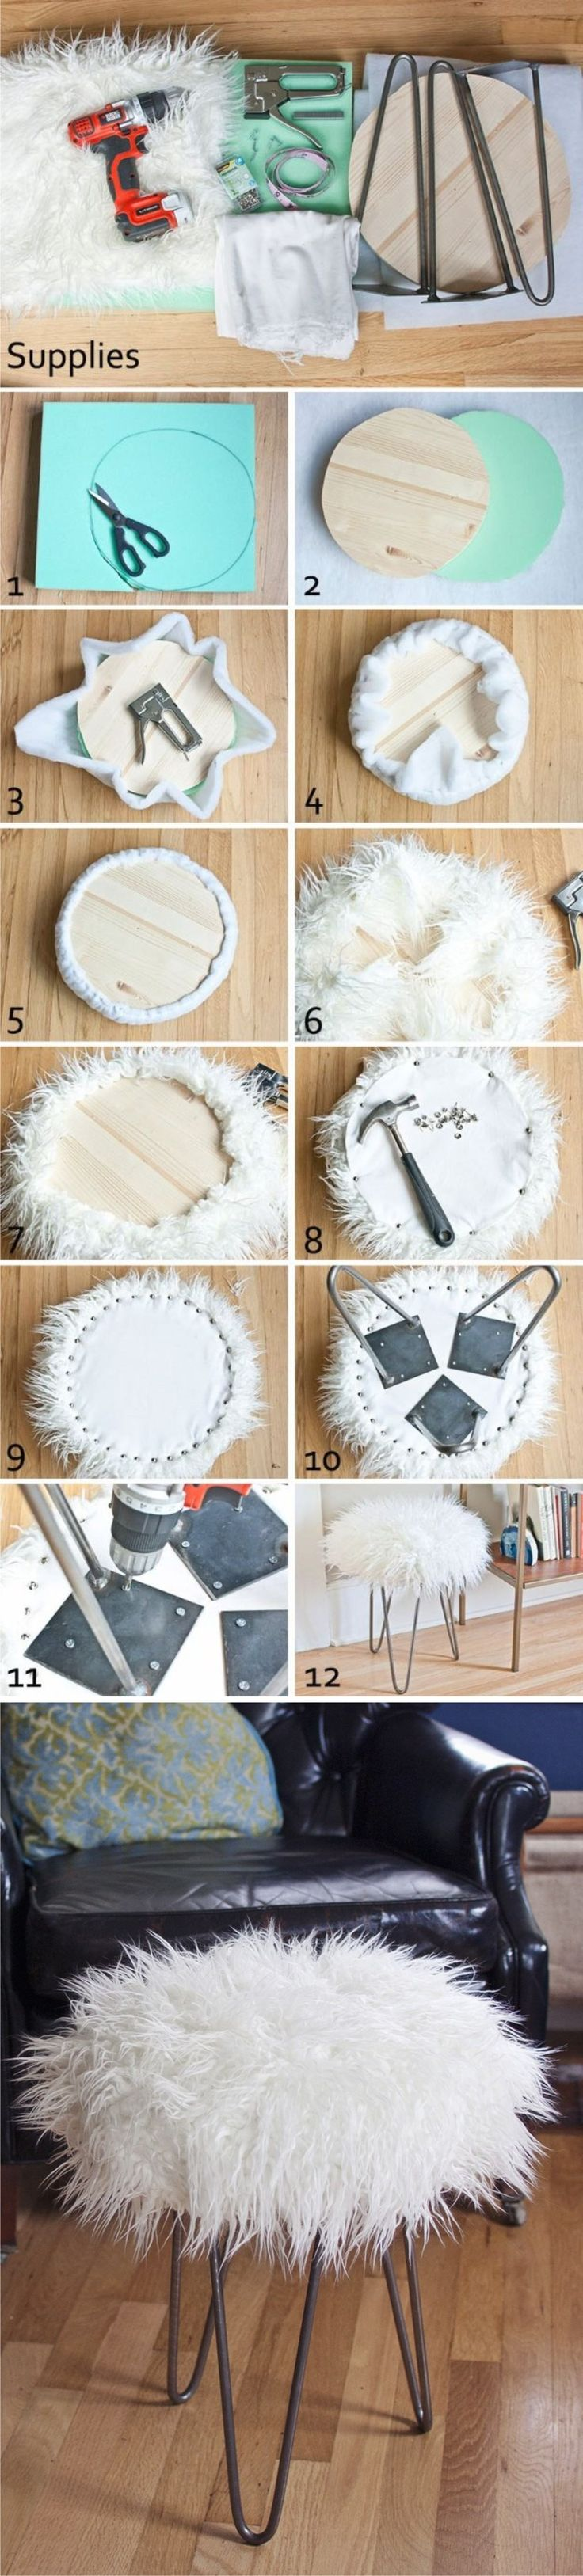 25 best ideas about ikea stool on pinterest diy stool for Cheap hairpin legs